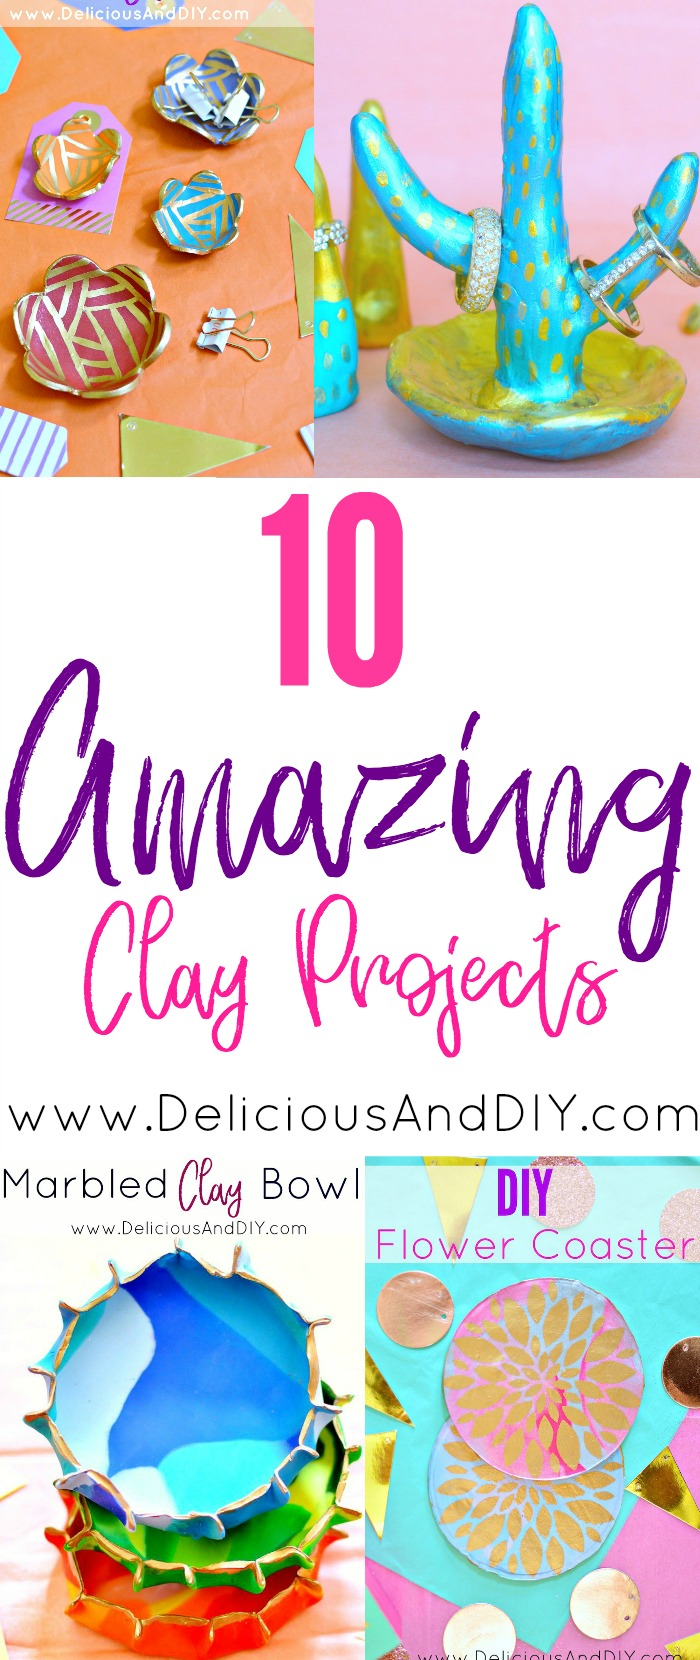 10 Amazing DIY Clay Gift Ideas which are budget friendly and perfect for the holidays| DIY Crafts| Christmas Gift Ideas| DIY Gift Ideas| DIY Creative Clay Projects| DIY Handmade Gift Ideas| Oven Bake Clay Projects| Budget Friendly Gift Options| DIY Crafts| 10 creative gift ideas for Christmas